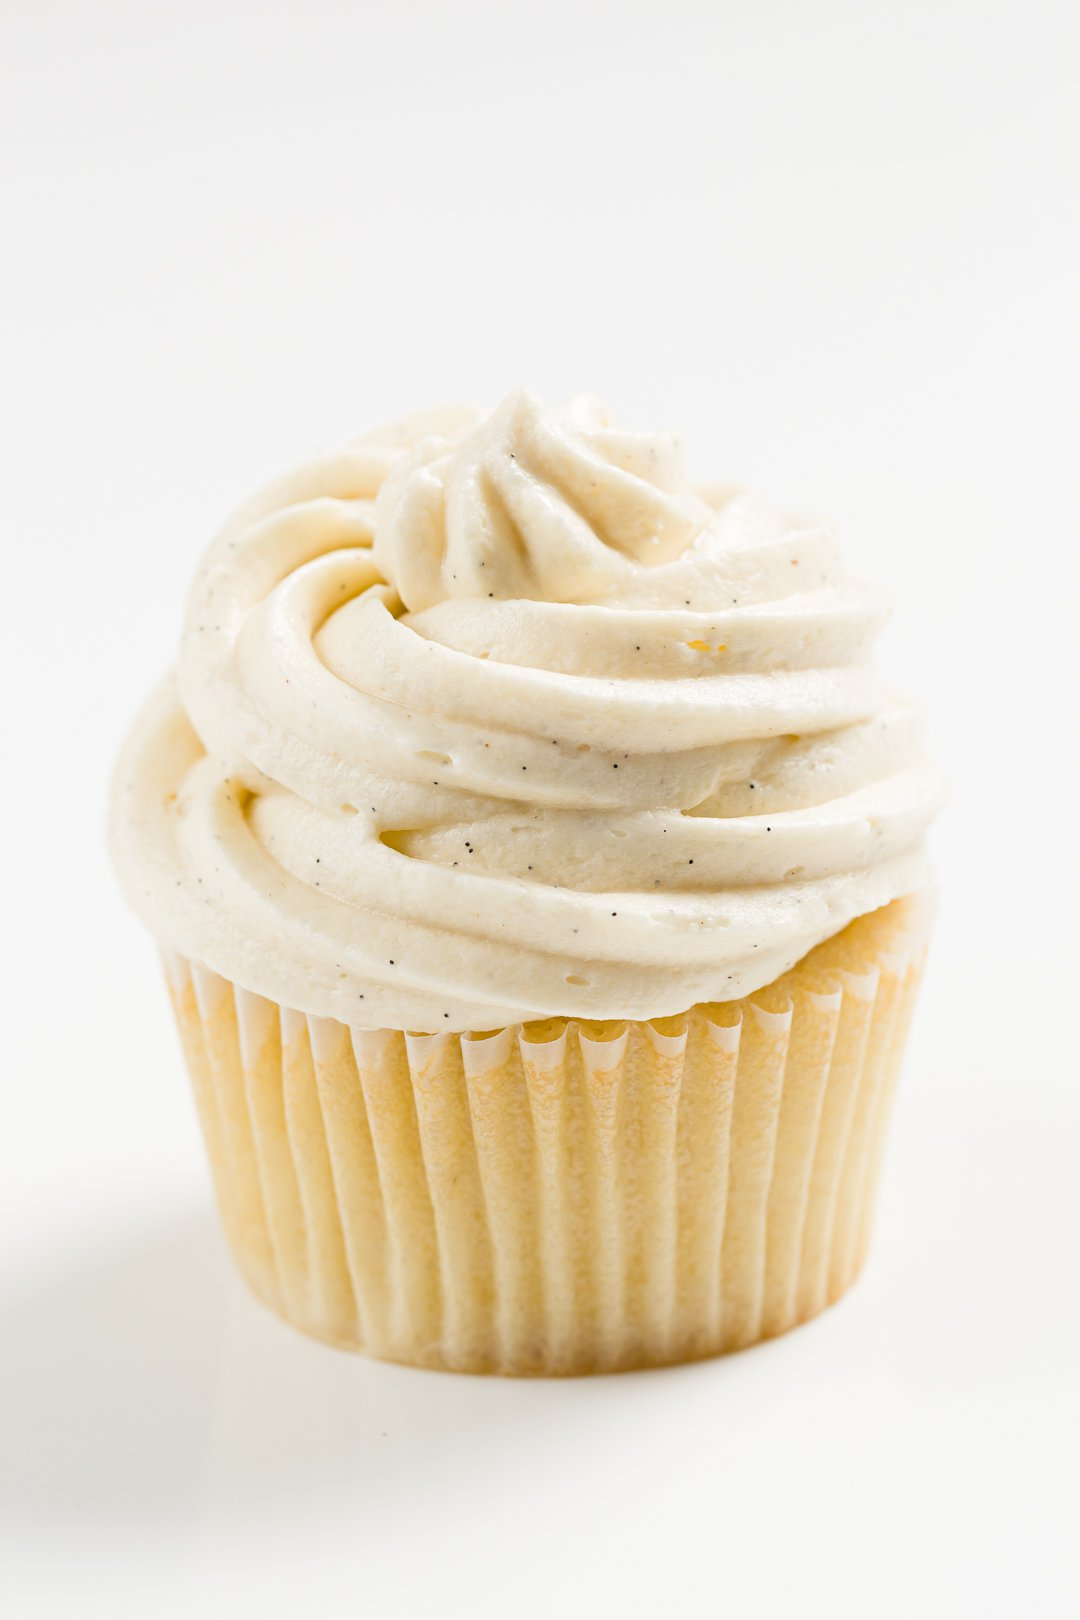 Cupcake topped with sour cream frosting